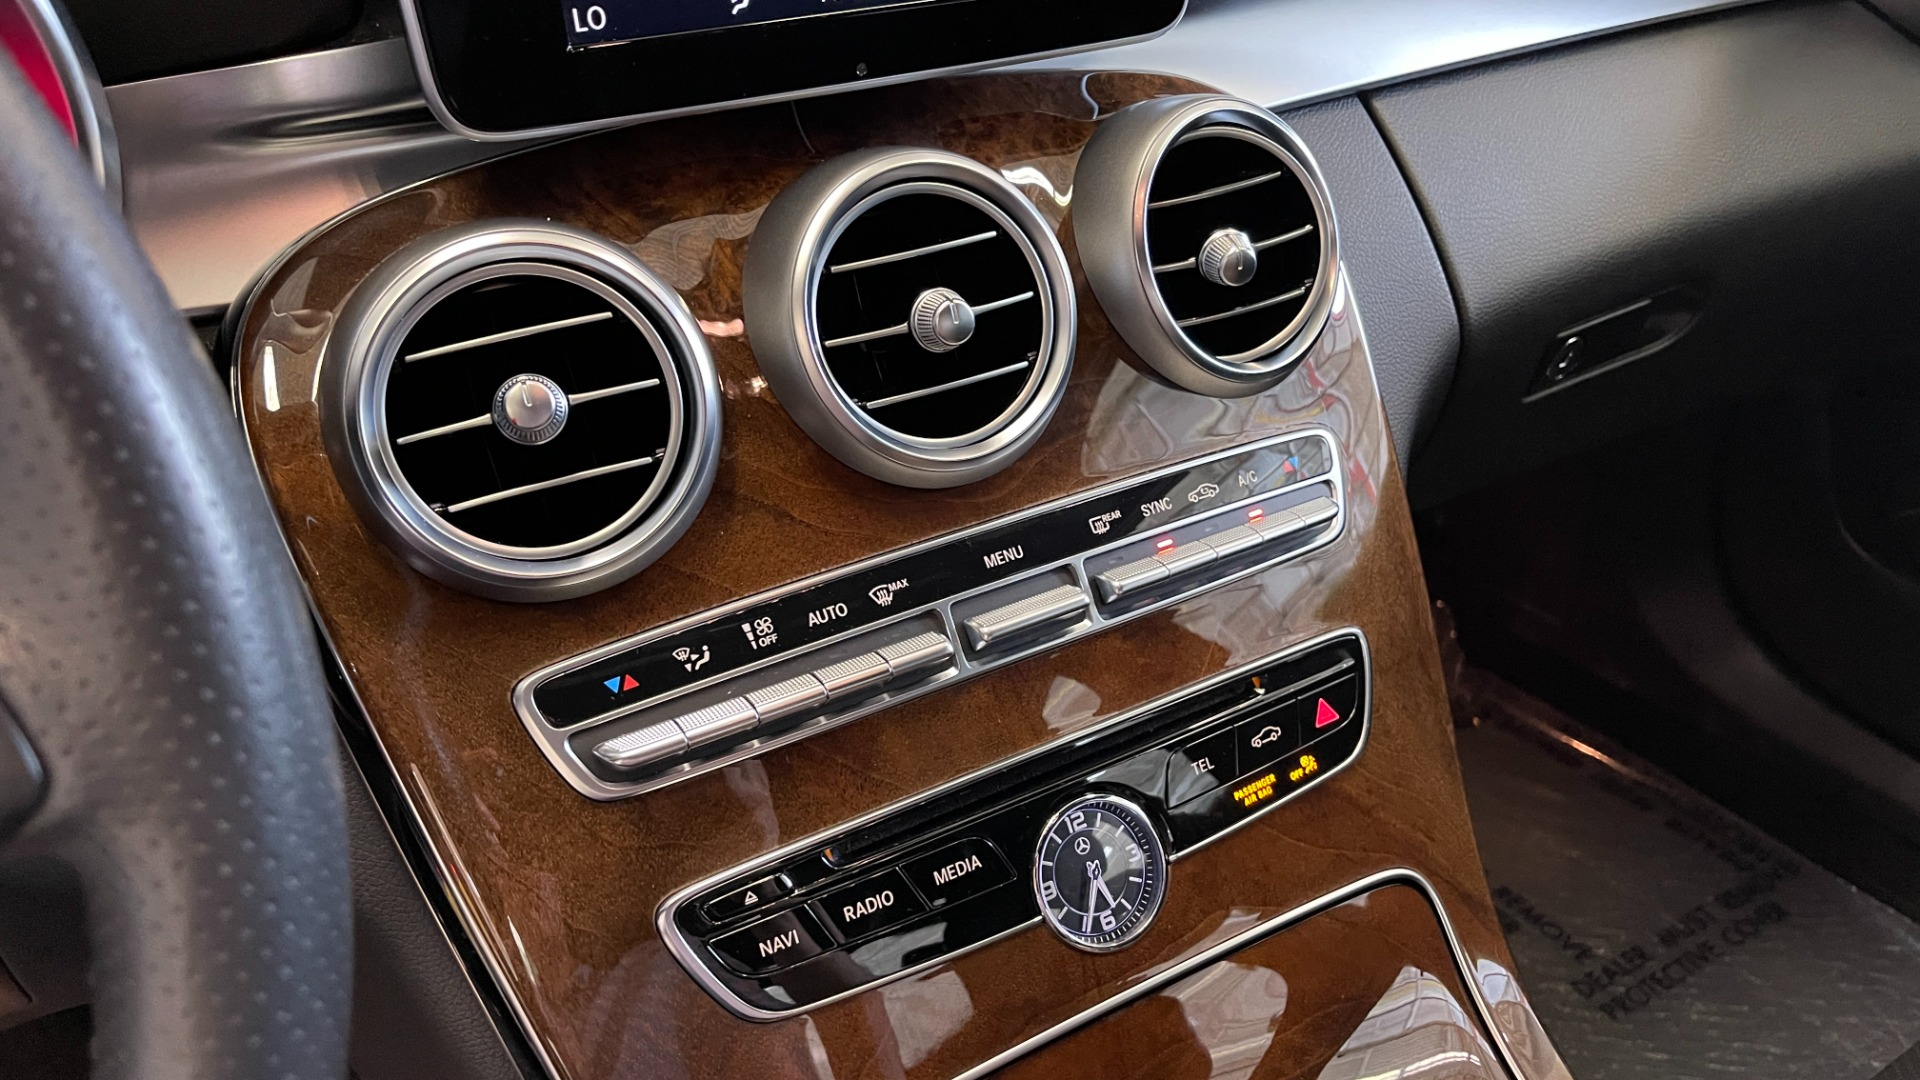 Used 2018 Mercedes-Benz C-CLASS C 300 PREMIUM / SUNROOF / APPLE CARPLAY / HTD STS / REARVIEW for sale $31,795 at Formula Imports in Charlotte NC 28227 33